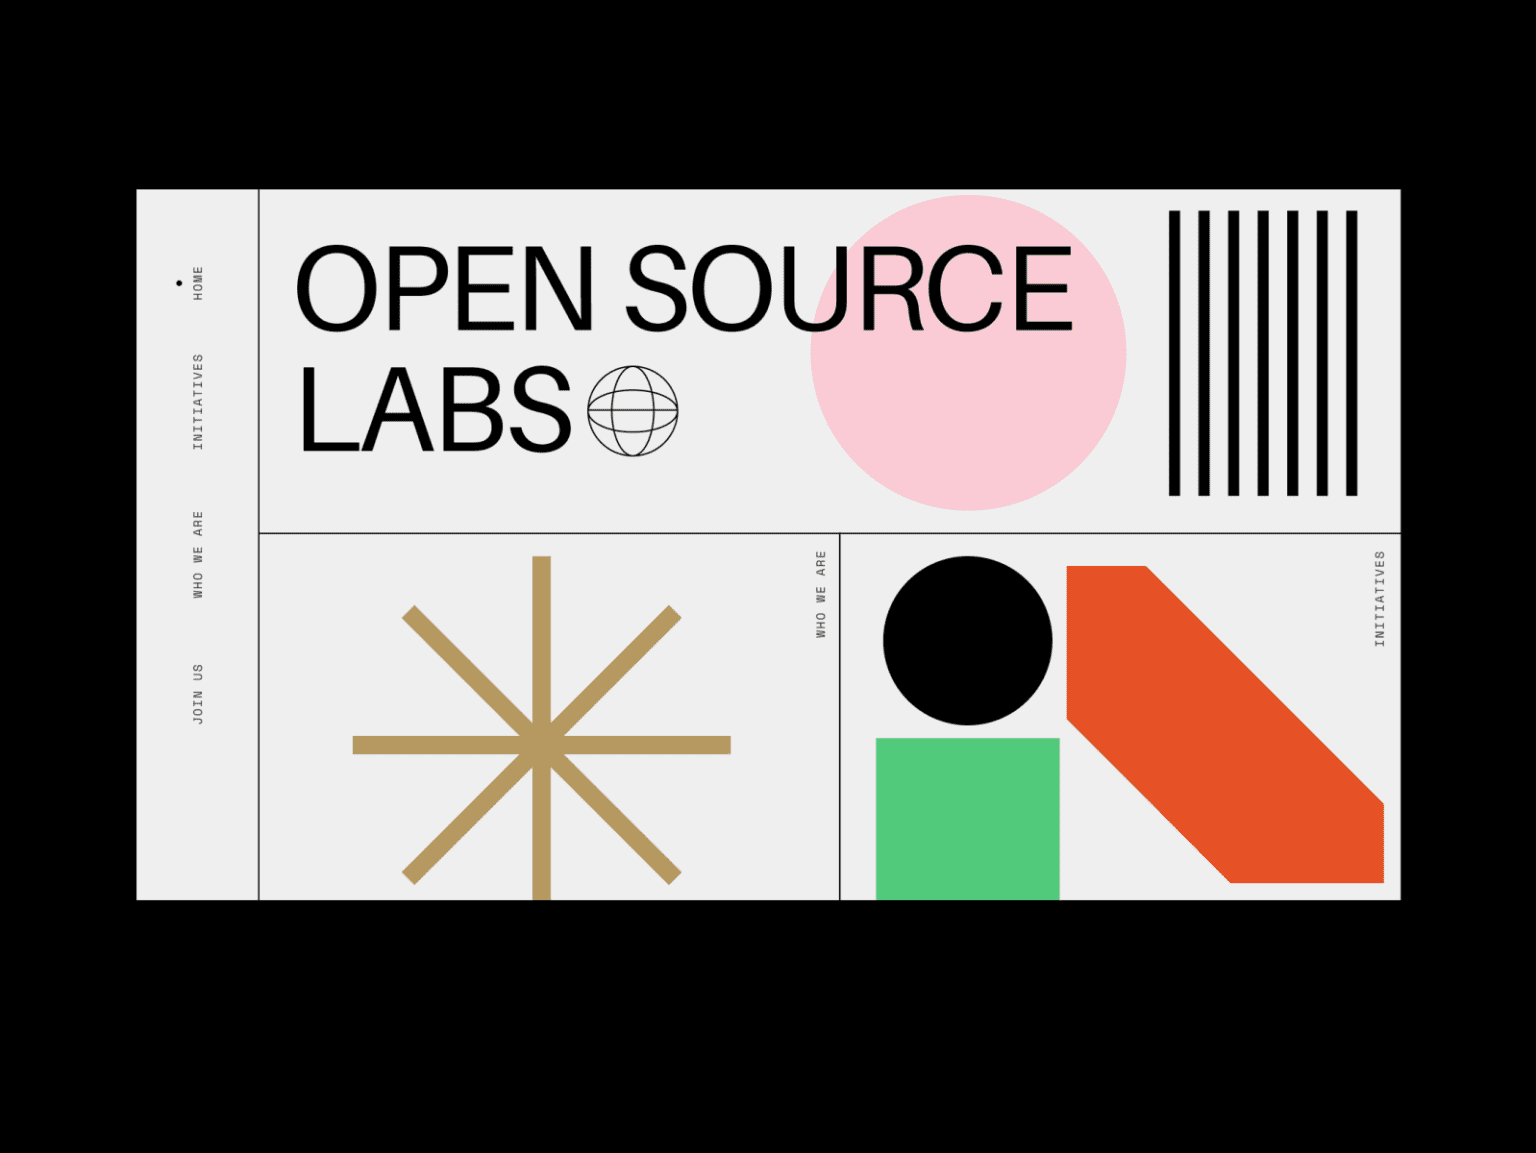 Open Source Låb